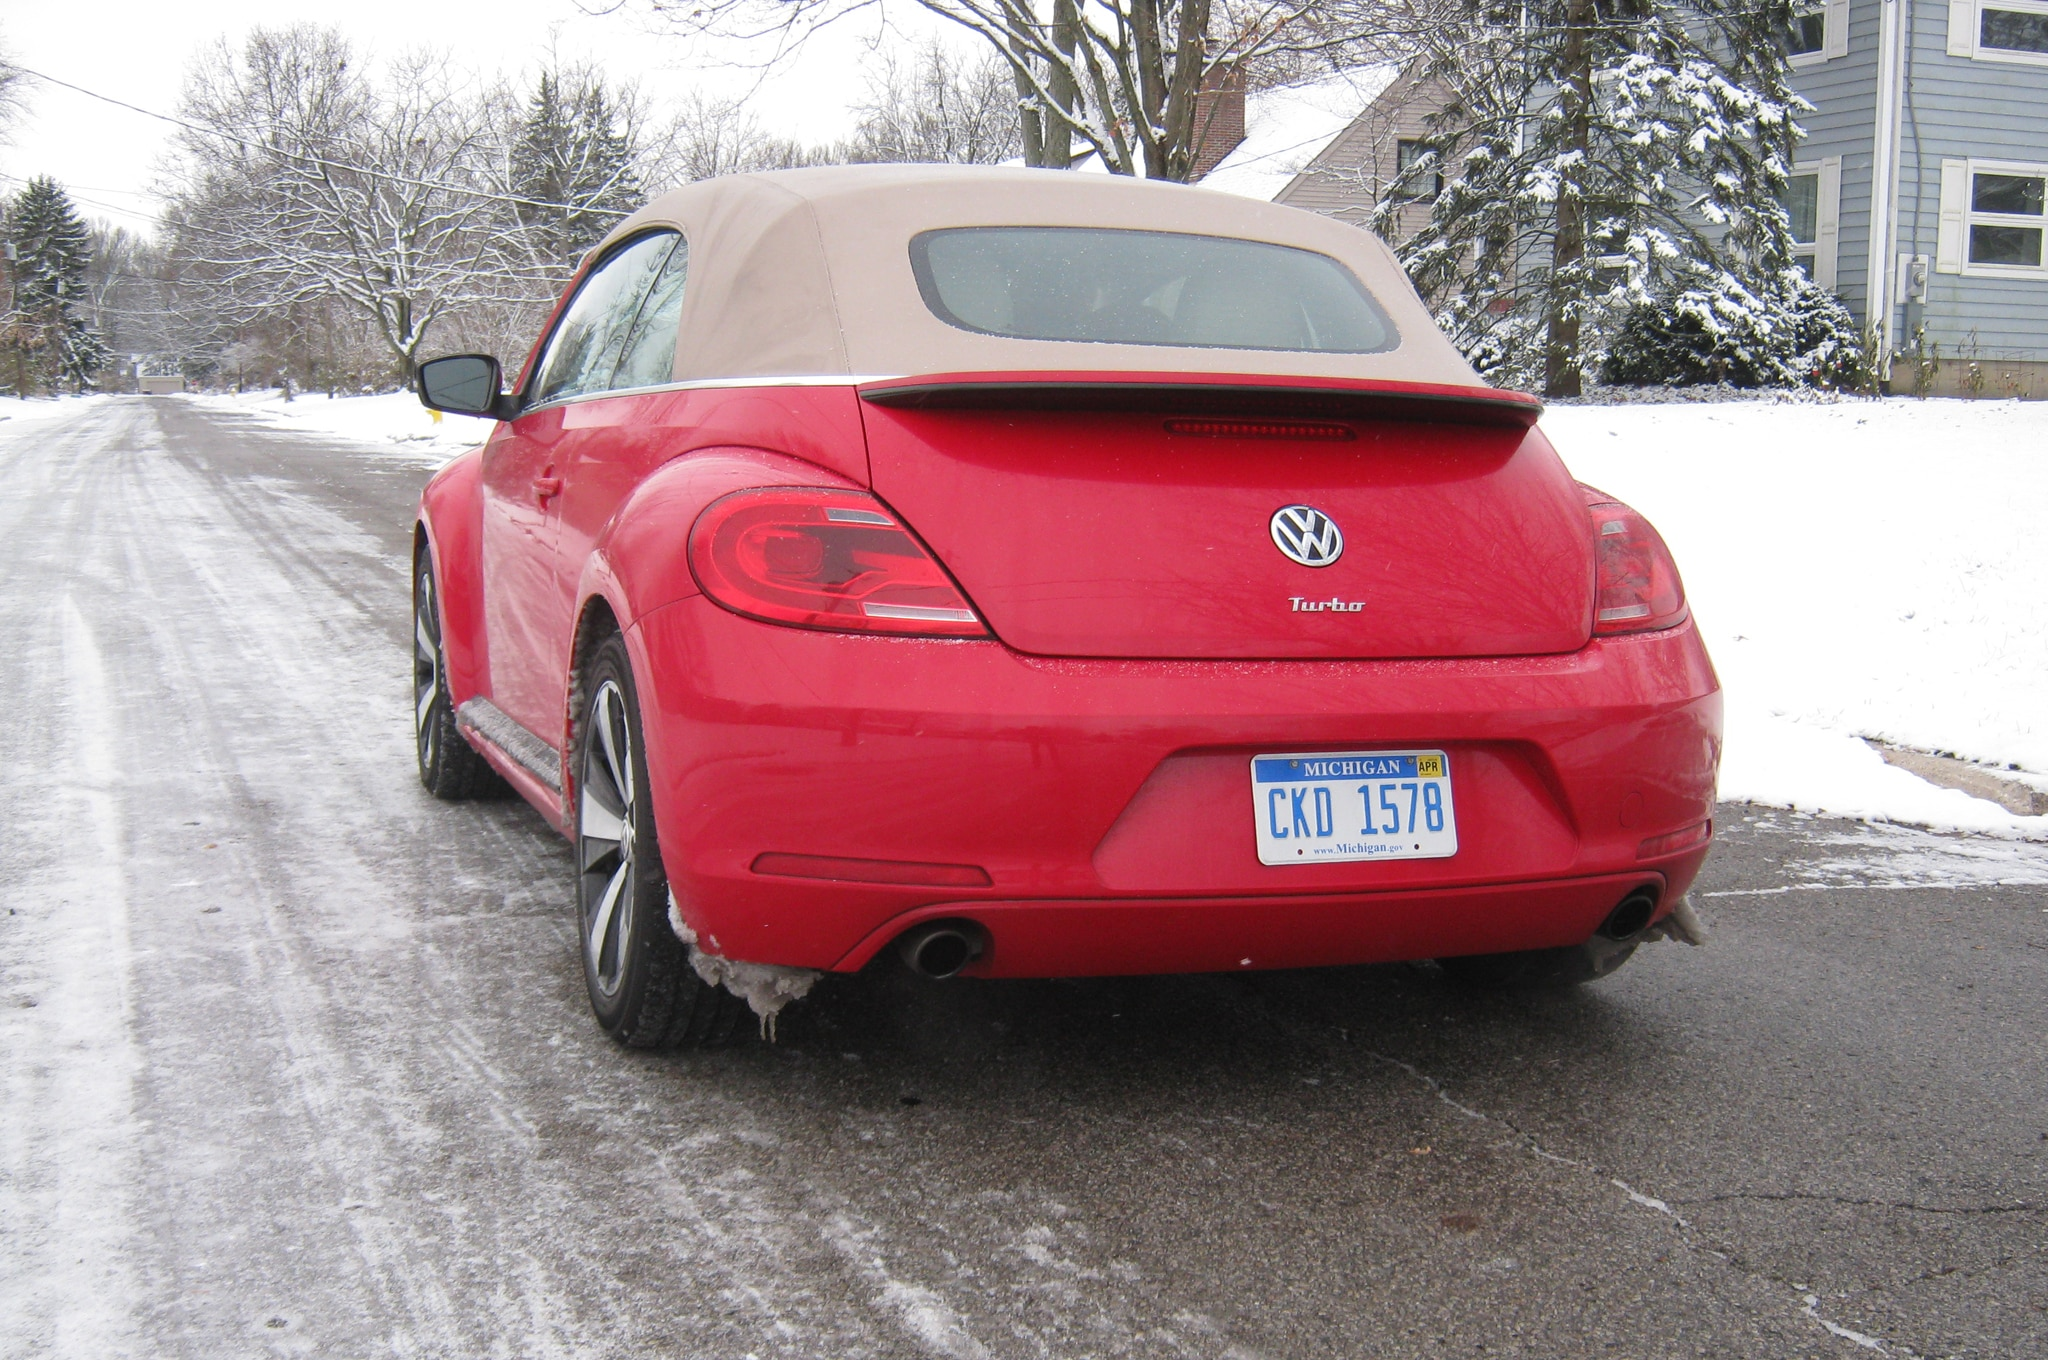 2013 Volkswagen Beetle Turbo Convertible Rear View Snow1